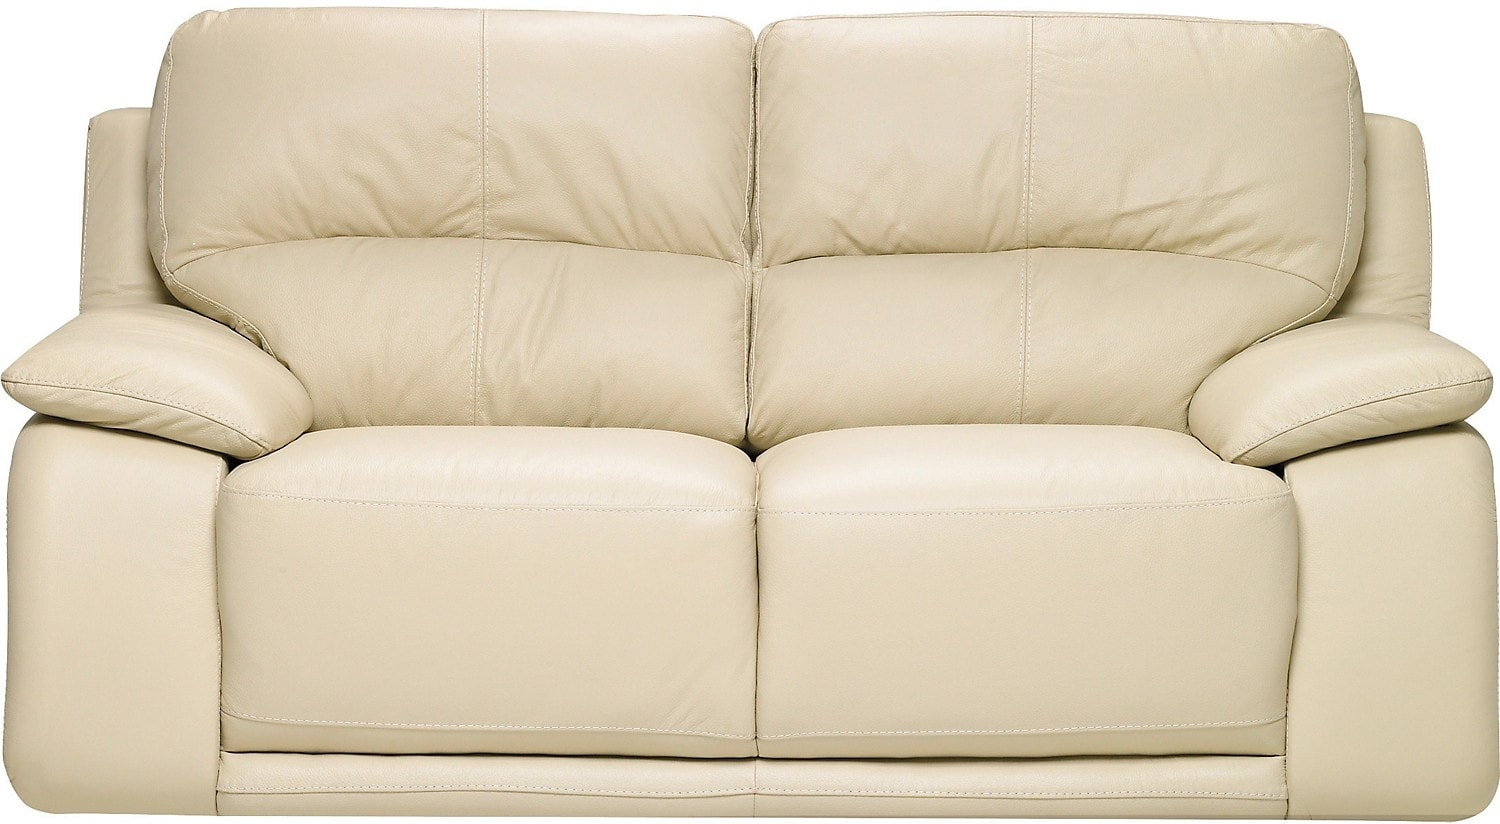 Living Room Furniture - Chateau d'Ax 100% Genuine Leather Loveseat - Ivory